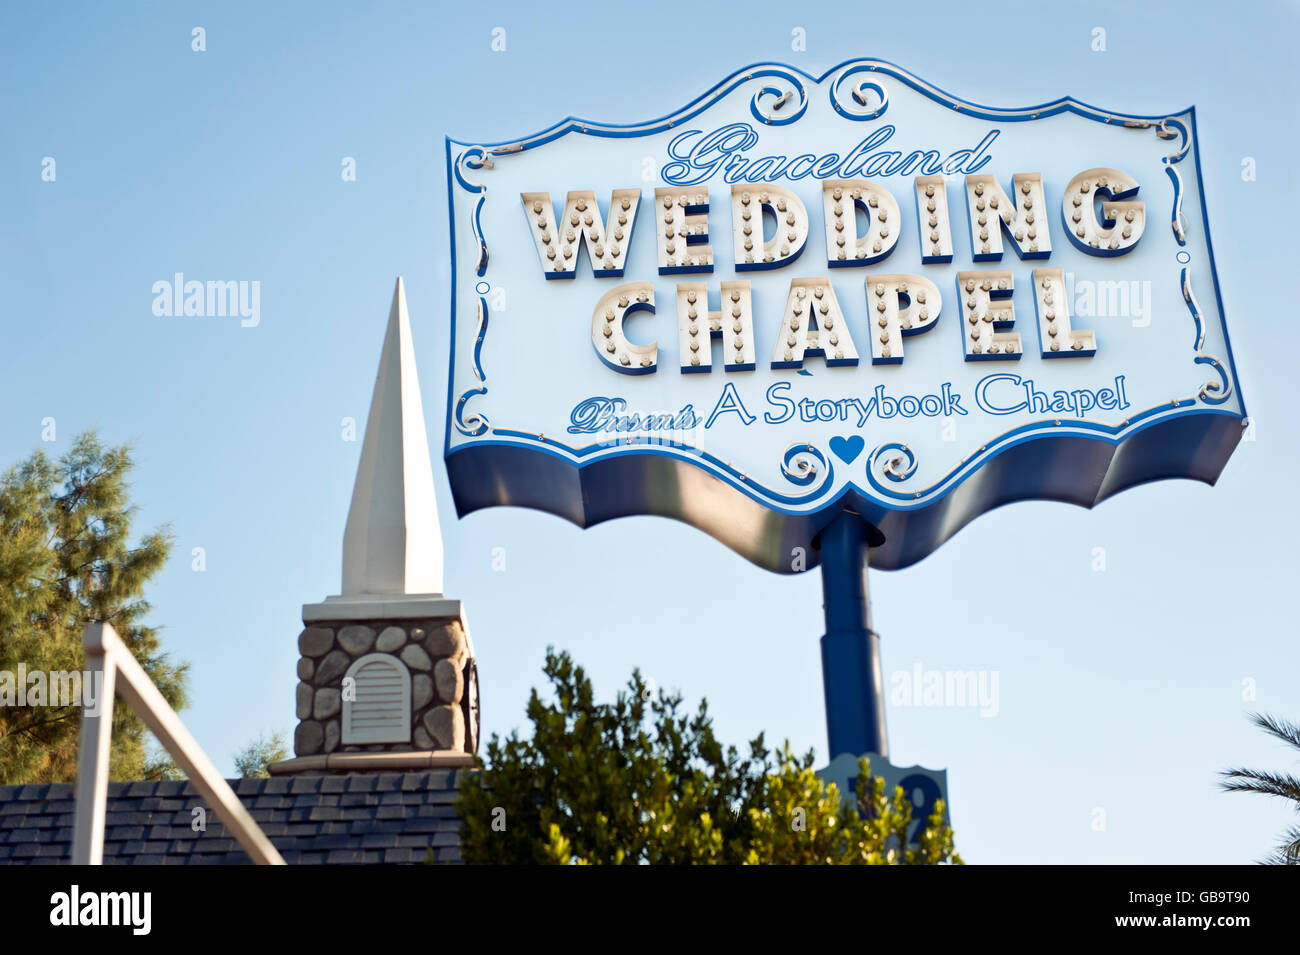 Graceland Wedding Chapel.Graceland Wedding Chapel In Las Vegas Nevada Stock Photo